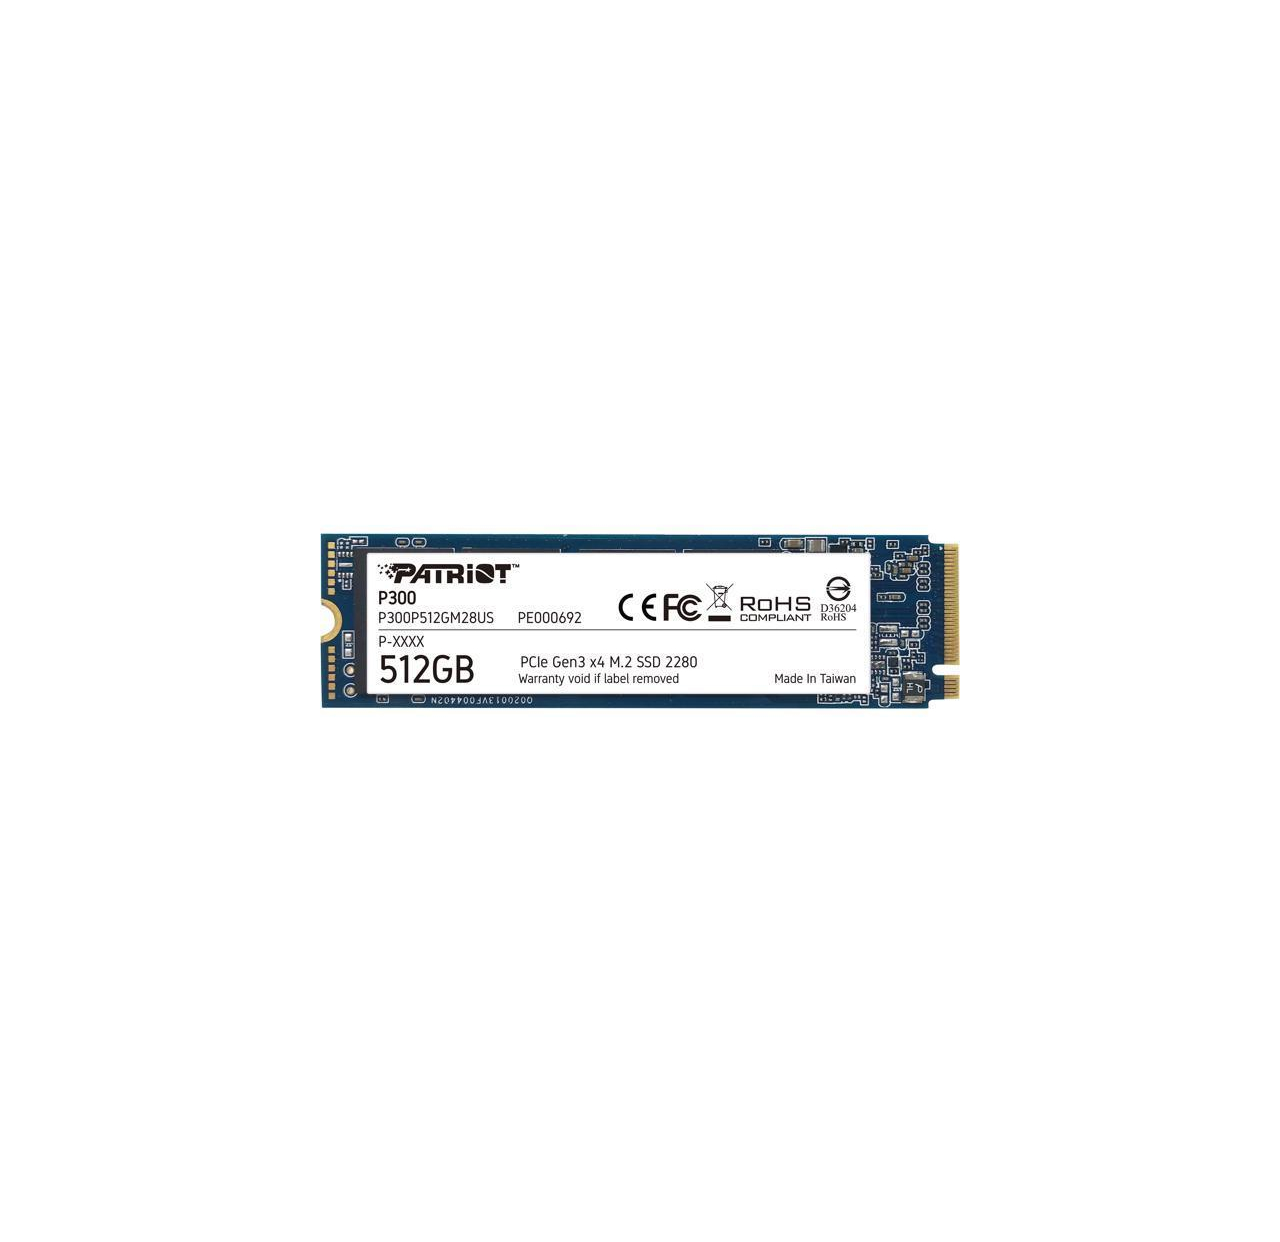 Dysk SSD Patriot P300 512GB M.2 2280 PCIE Gen3 x4 NVMe 1700MBs/1100MBs Phison E13T